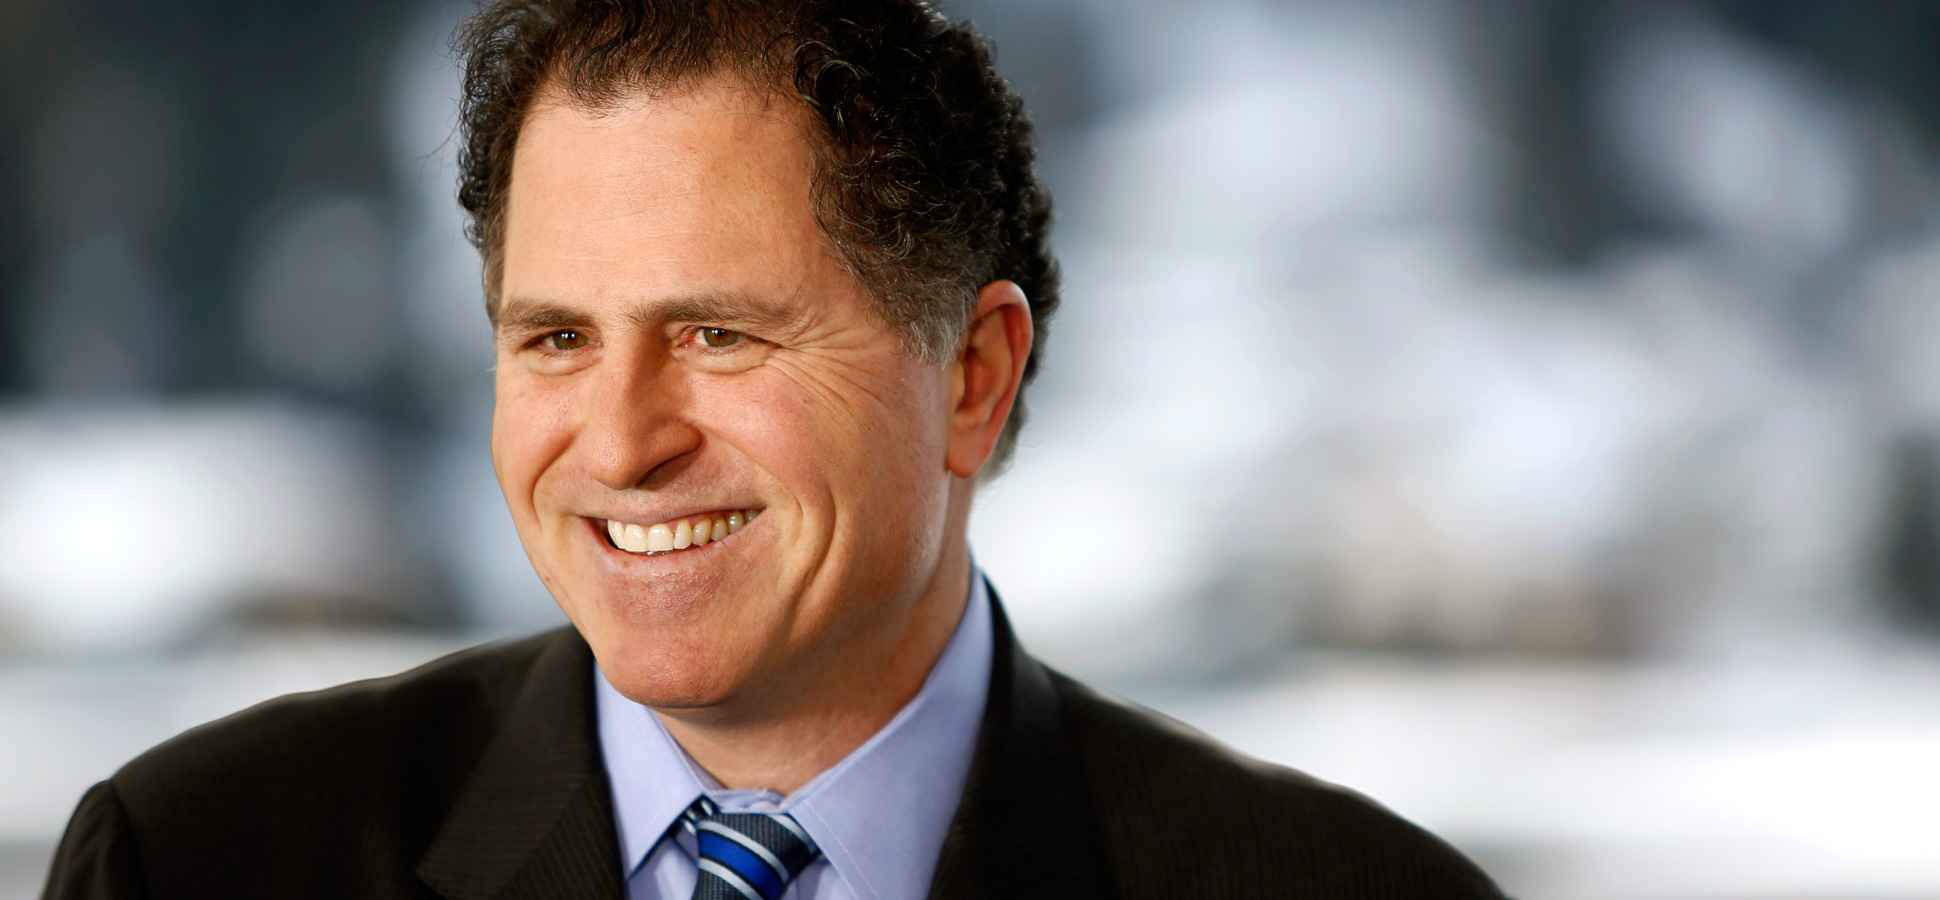 Michael Dell On The Dirty Little Secret About Big Data